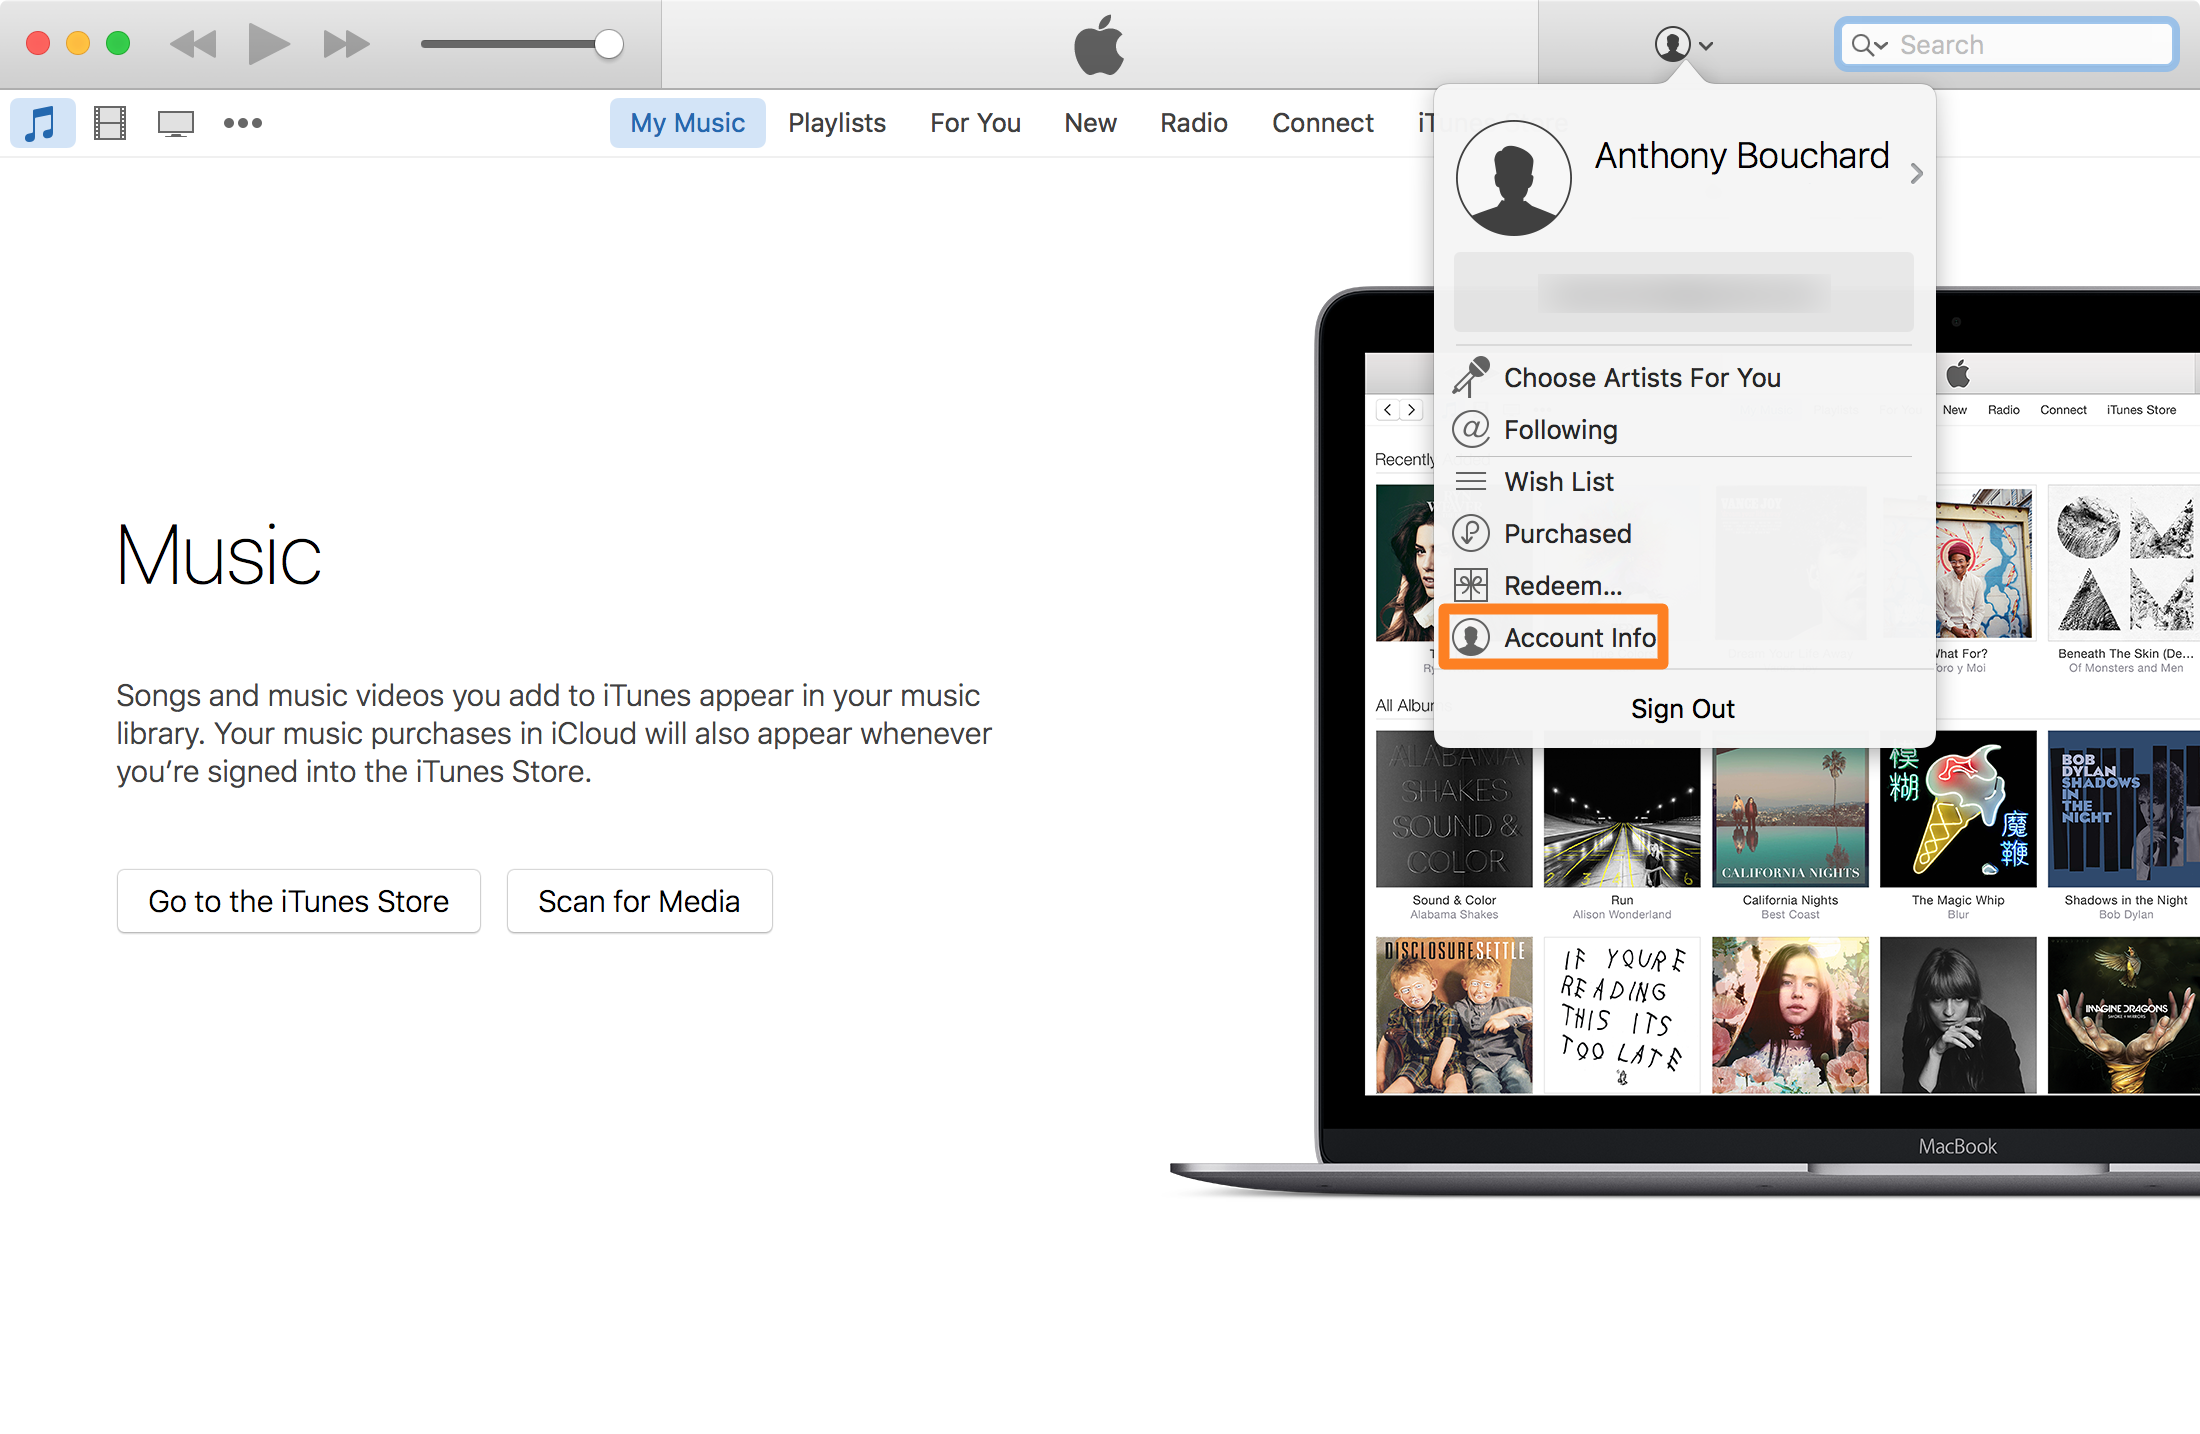 Change Apple ID payment information on Mac Account Info